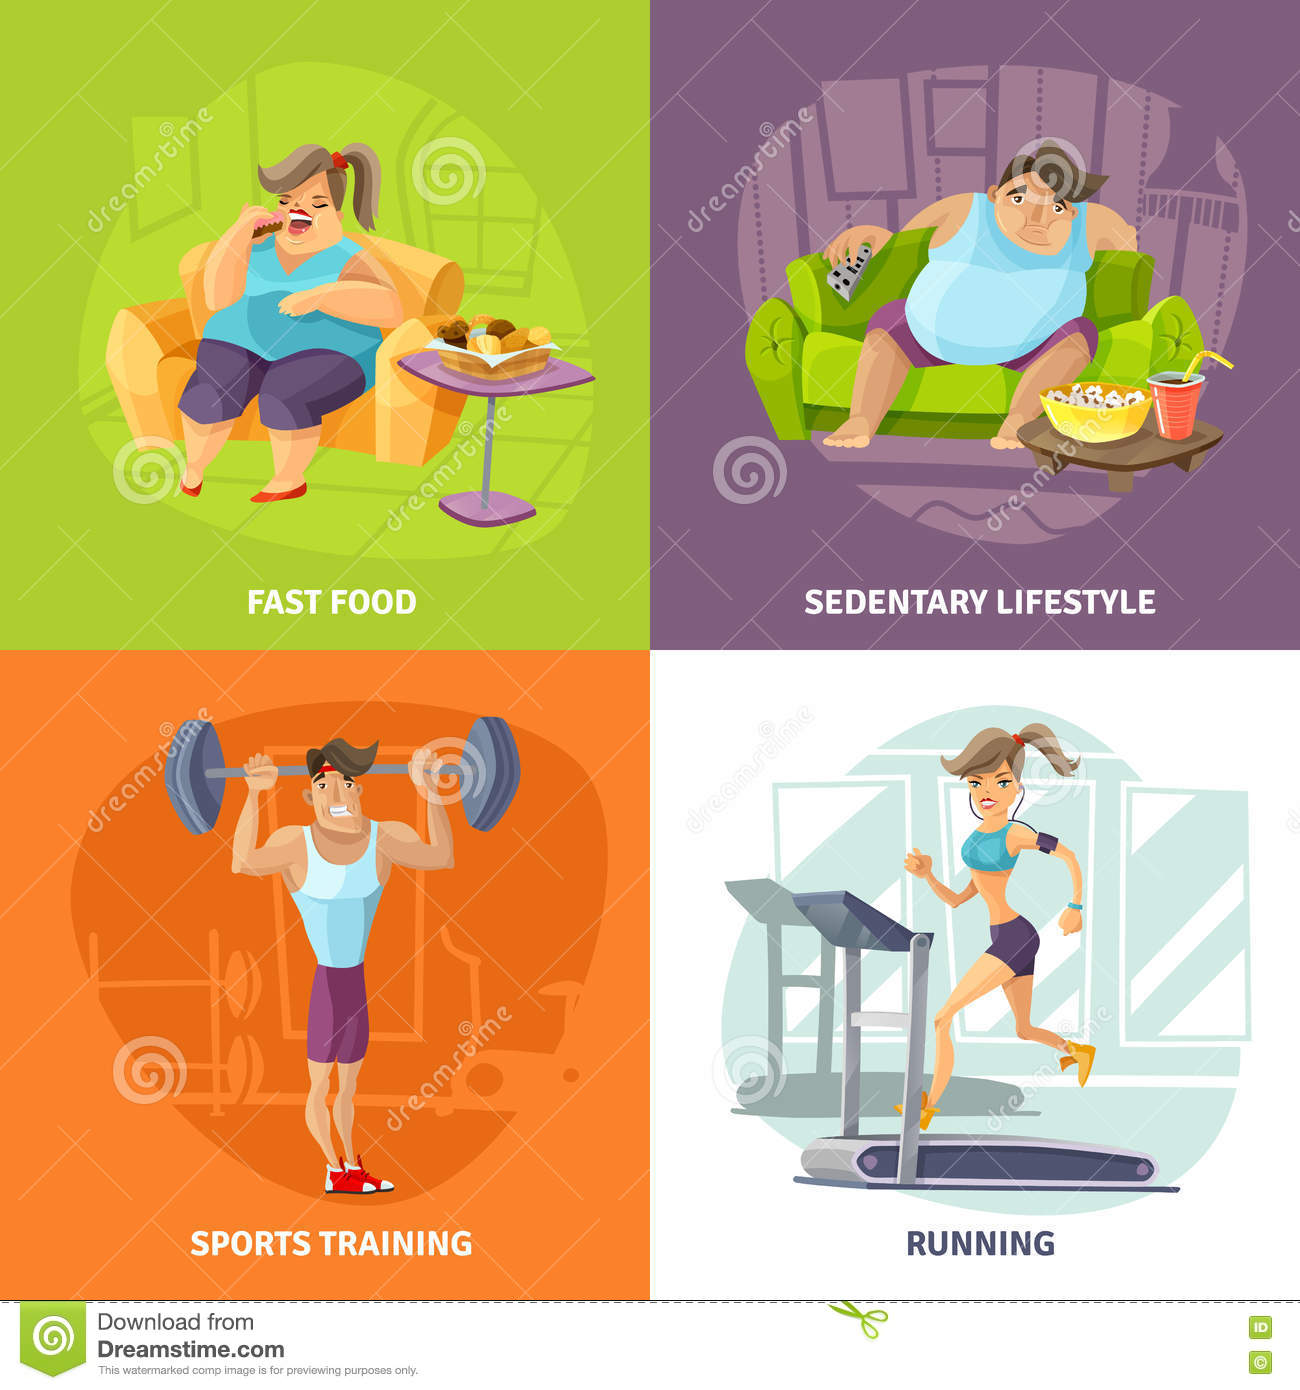 Sedentary Lifestyle: Obesity And Health Concept Icons Set Stock Vector